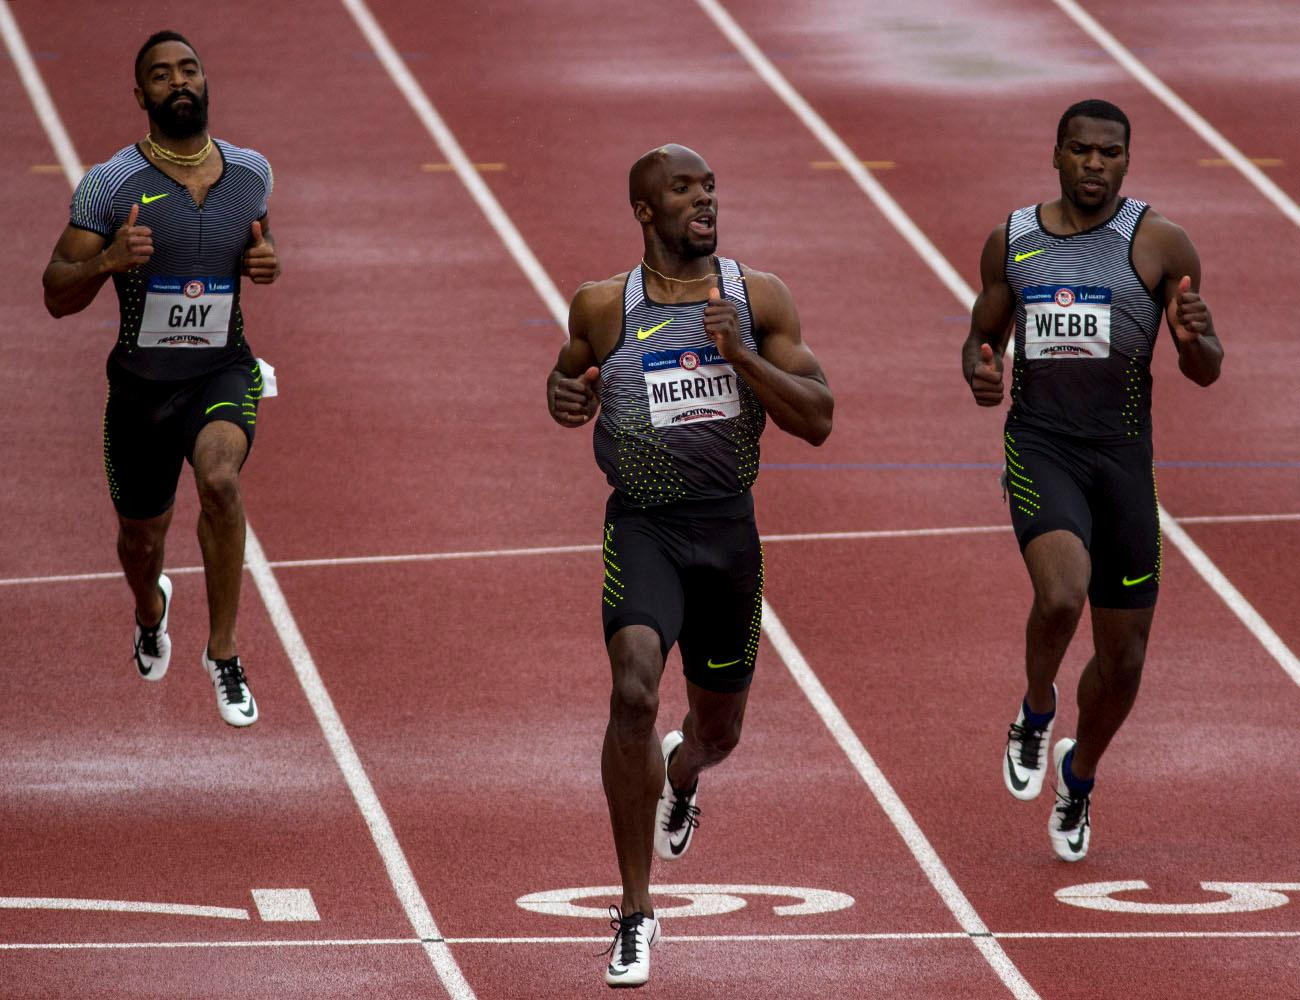 From left to right, Tyson Gay, LaShawn Merritt and Ameer Webb cross the finish line in the third heat of the Men�s 200m Dash semi-finals. Gay finished with a time of 20.16. Merritt finished with a time of 19.74 and Webb finished with a time of 19.97. They will all advance to the finals. Kristi Castlin, left, and Nia Ali, right, embrace after realizing they qualified for the Rio Olympics in the Women�s 100m Hurdle. Castlin finished second with a time of 12.50. Ali finished third with a time of 12:55. Day eight of the U.S. Olympic Track and Field Trials took place Friday at Hayward Field in Eugene, Ore. Events continue through July 10. (Photo by Amanda Butt)